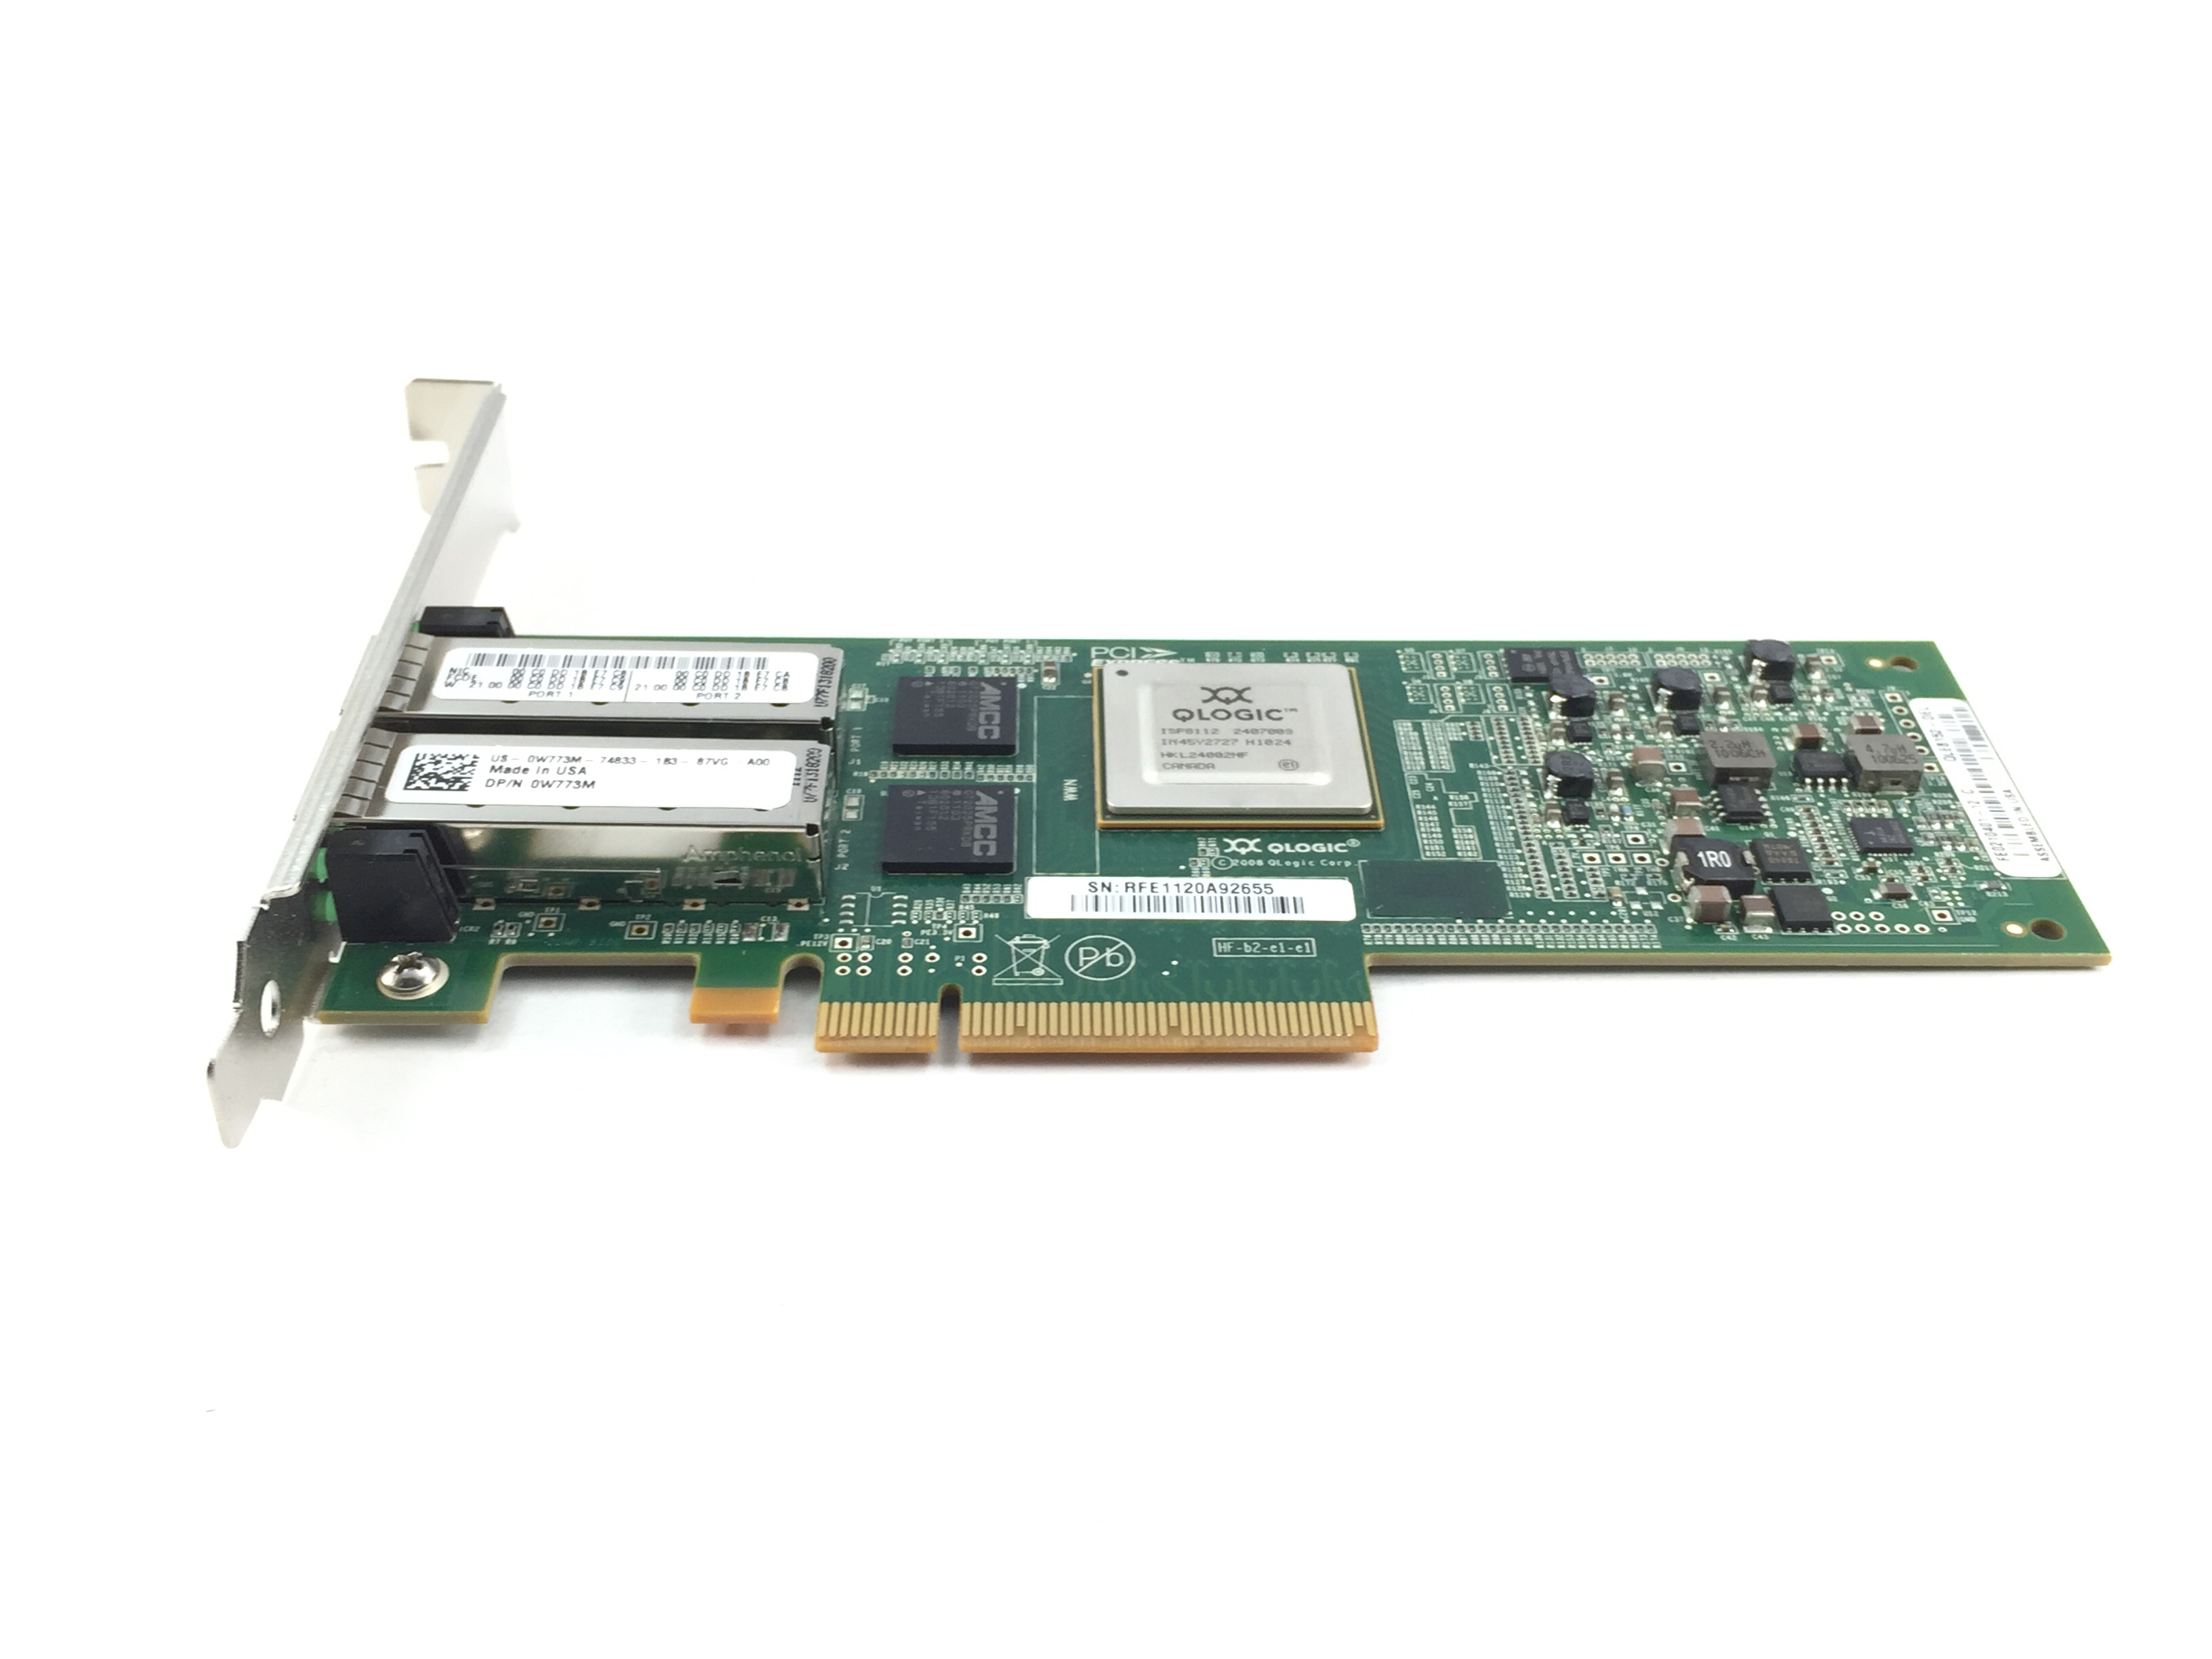 Dell Qlogic Qle8152 10GB Dual Port Ethernet Network Adapter (W773M)